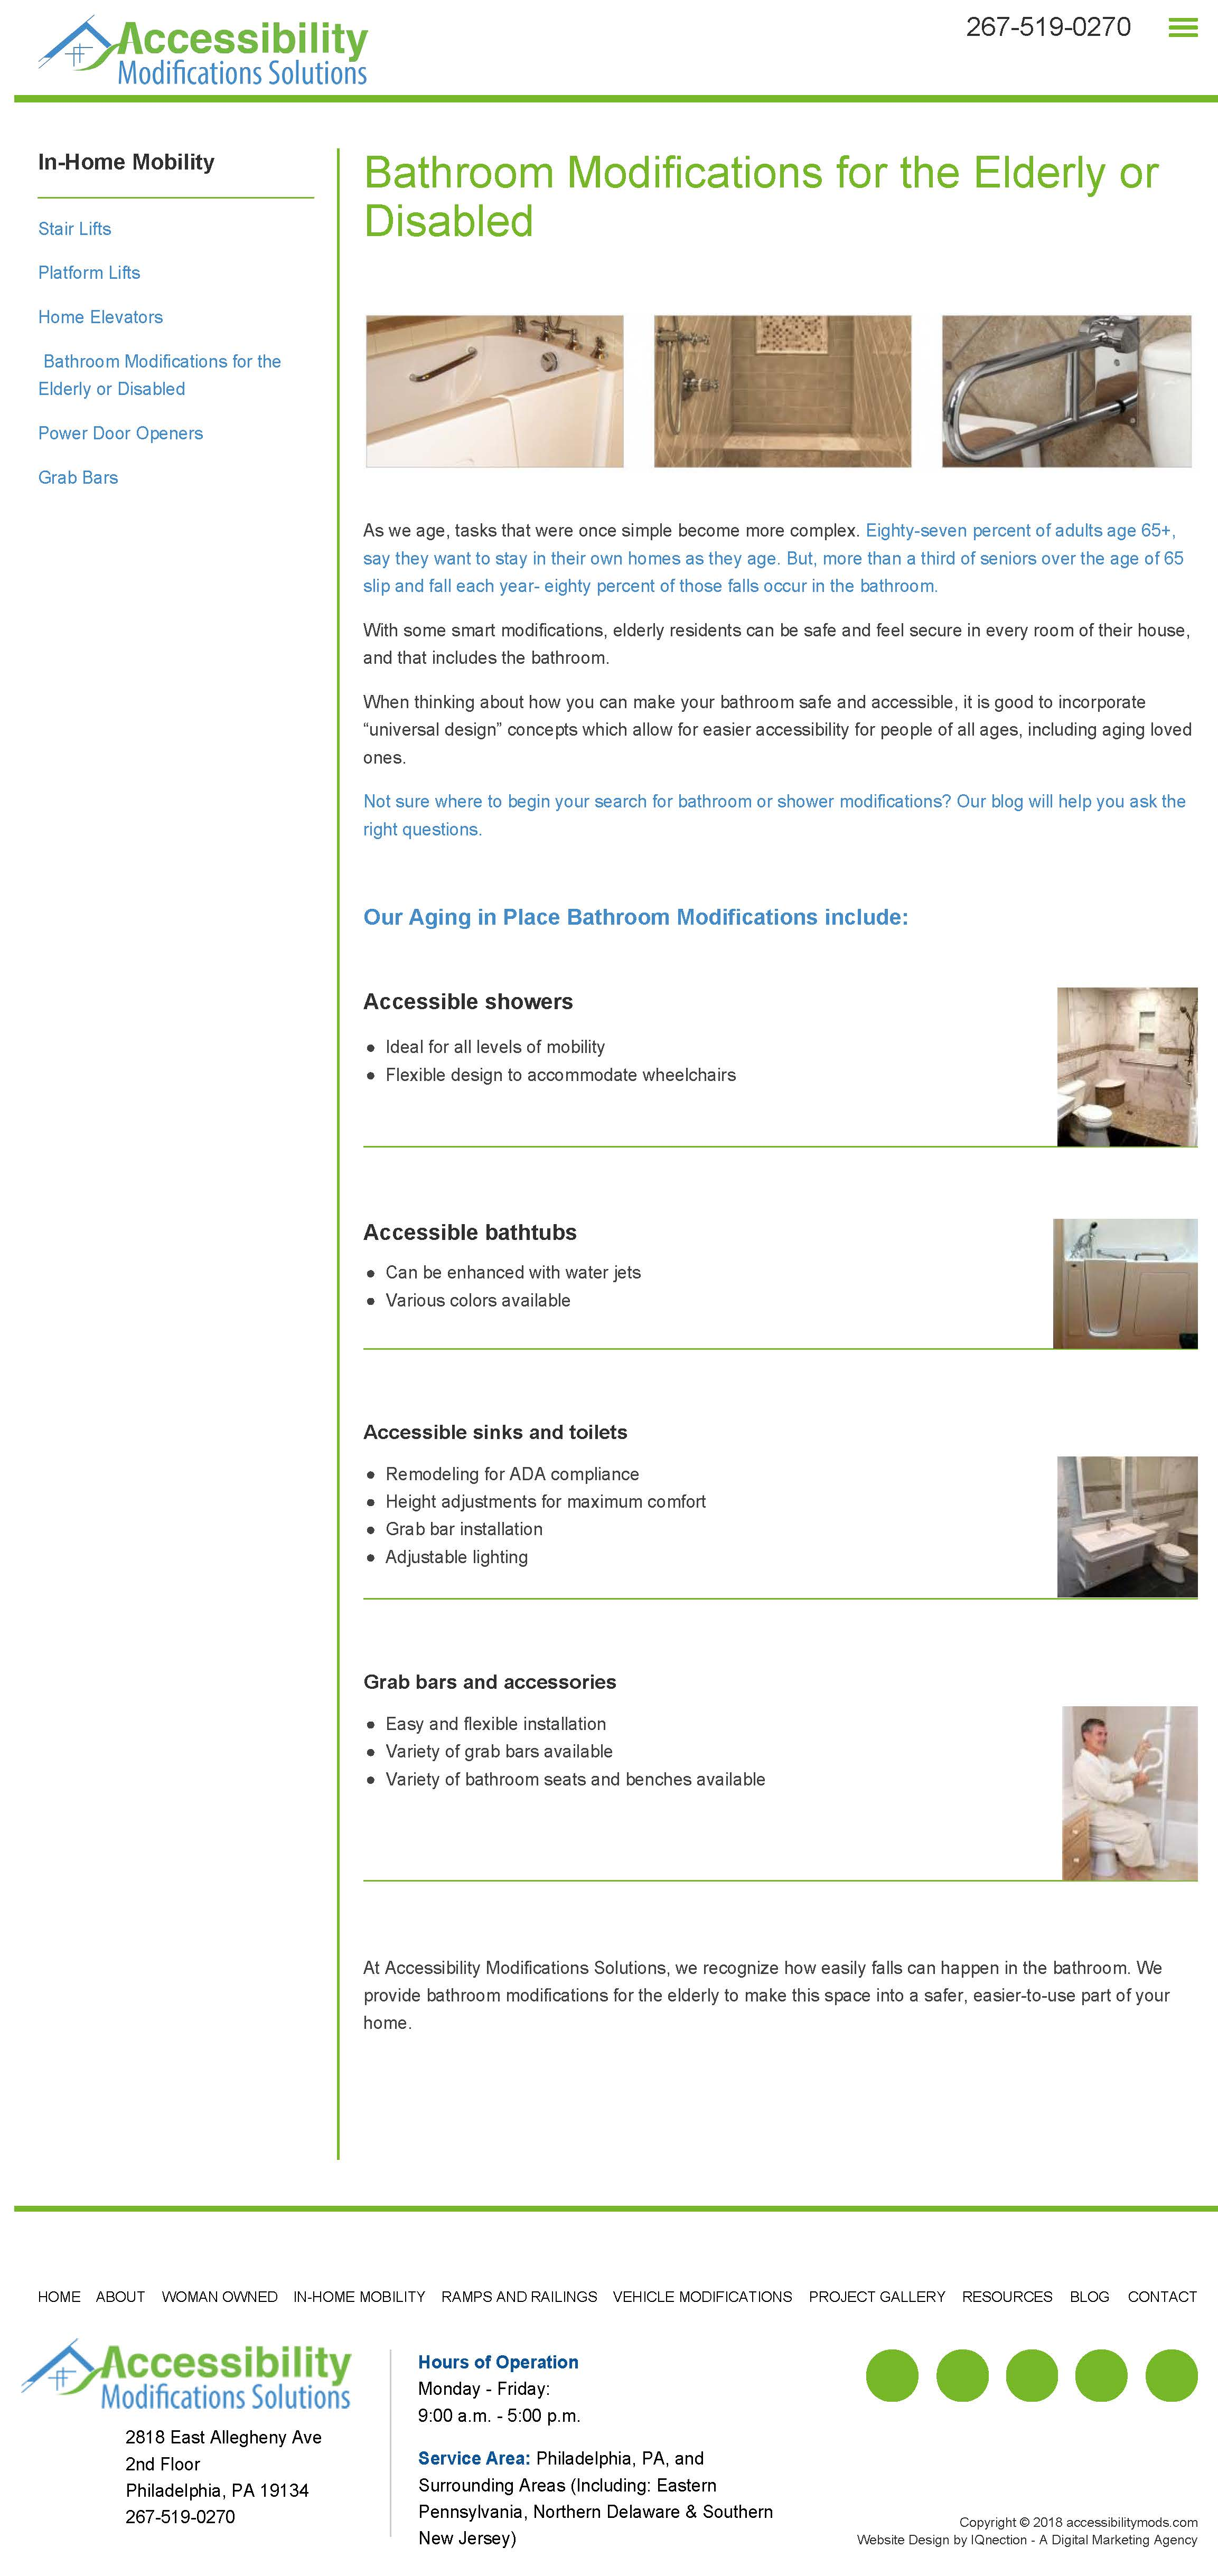 Bathroom Modifications for the Elderly | In-Home Mobility.jpg